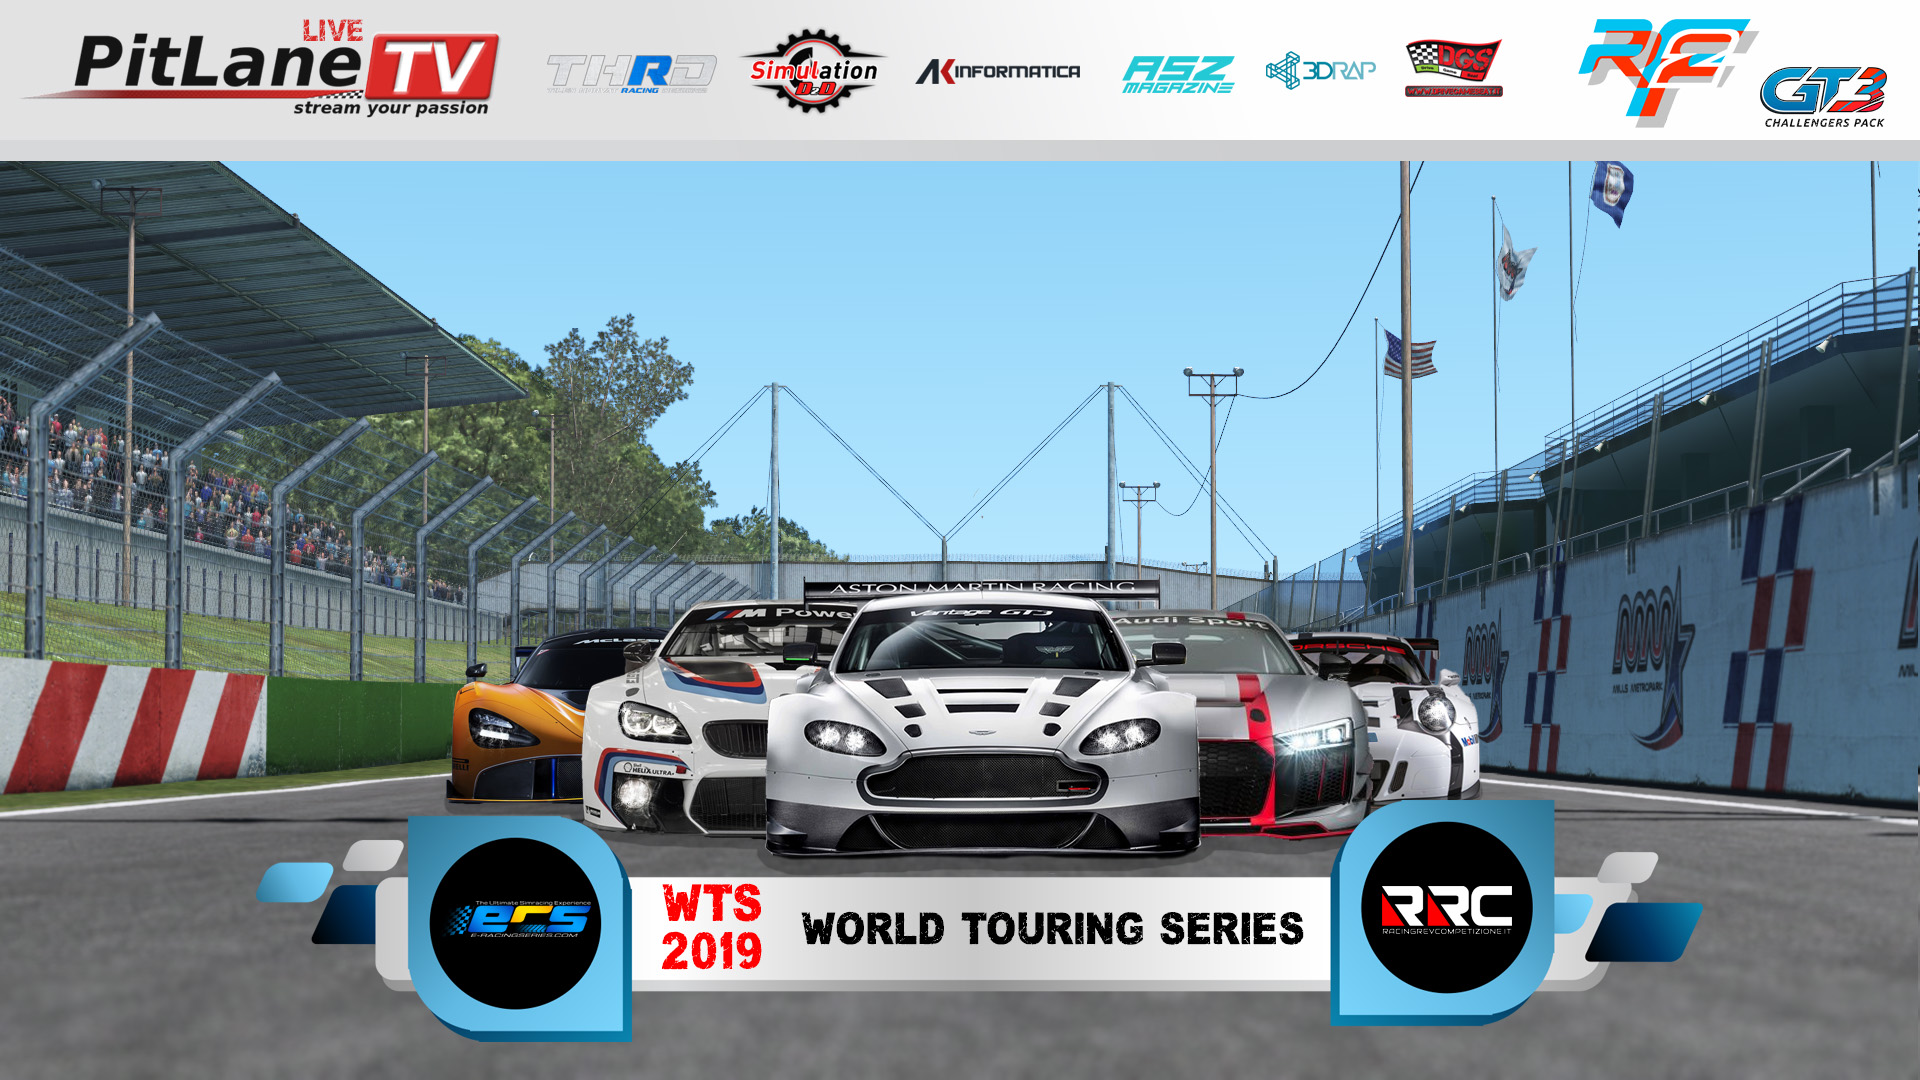 World Touring Series – WTS2019